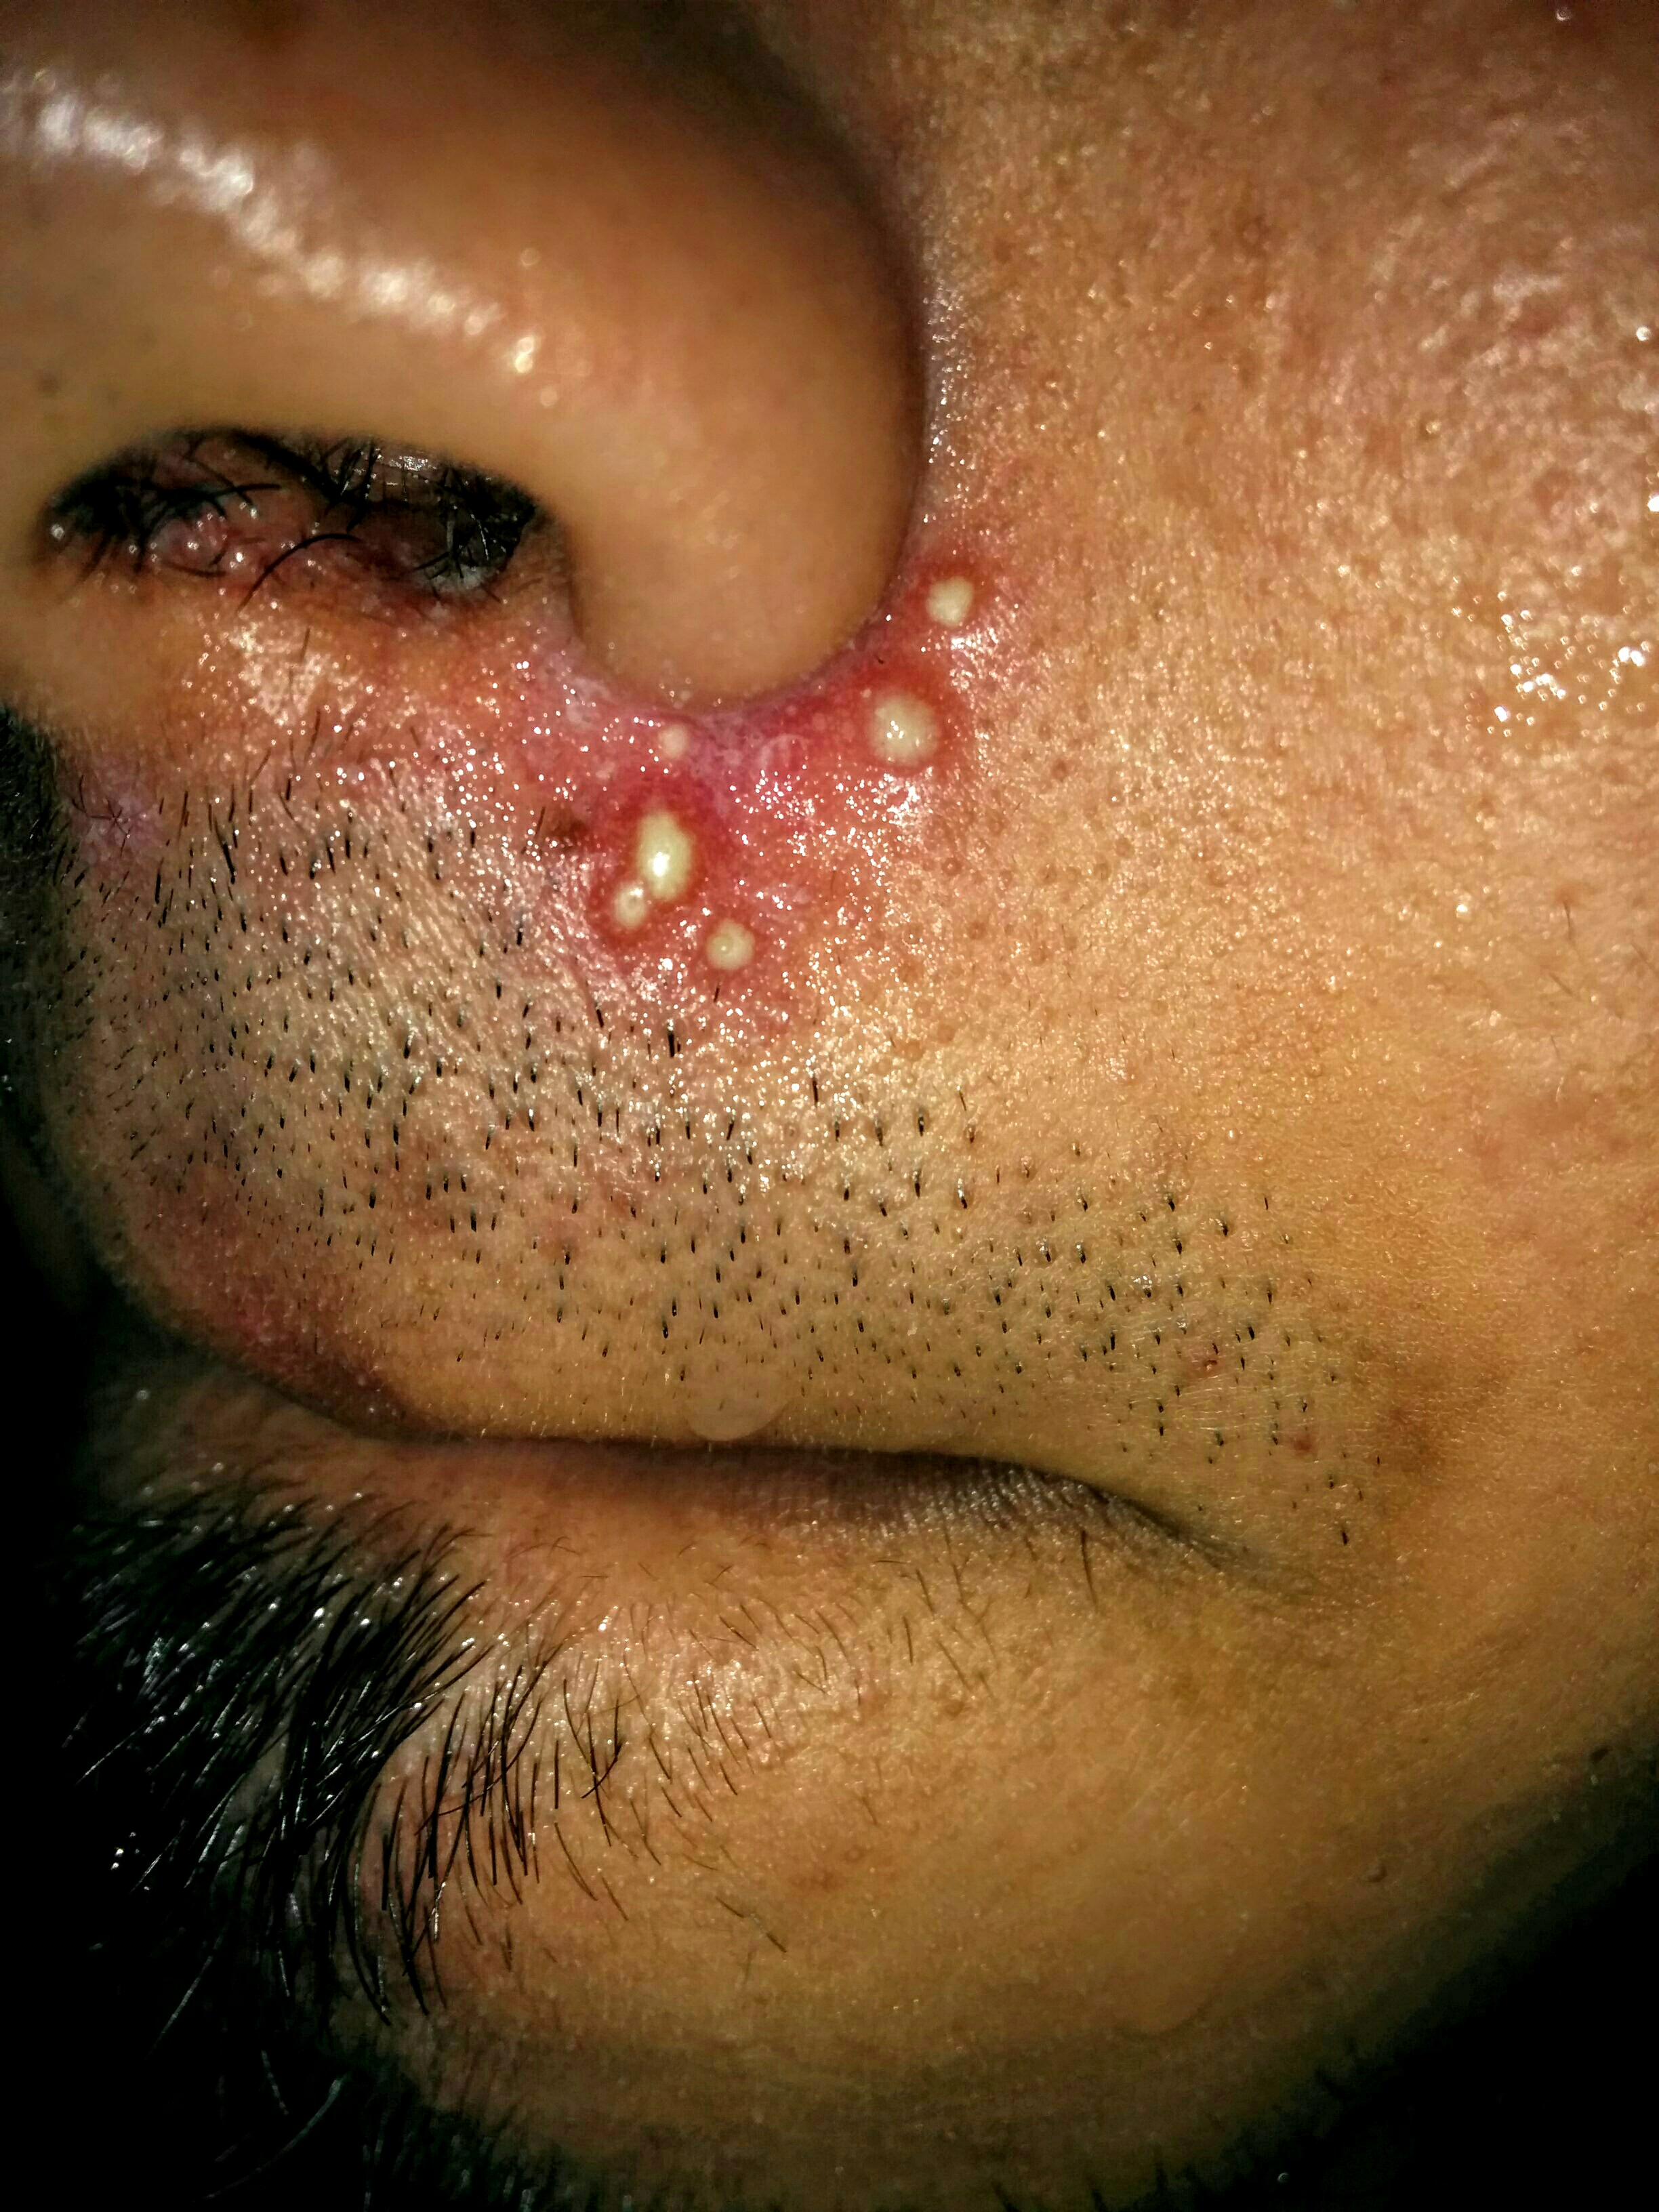 White pustules around mouthnose pictures included general img201507262131262g ccuart Images